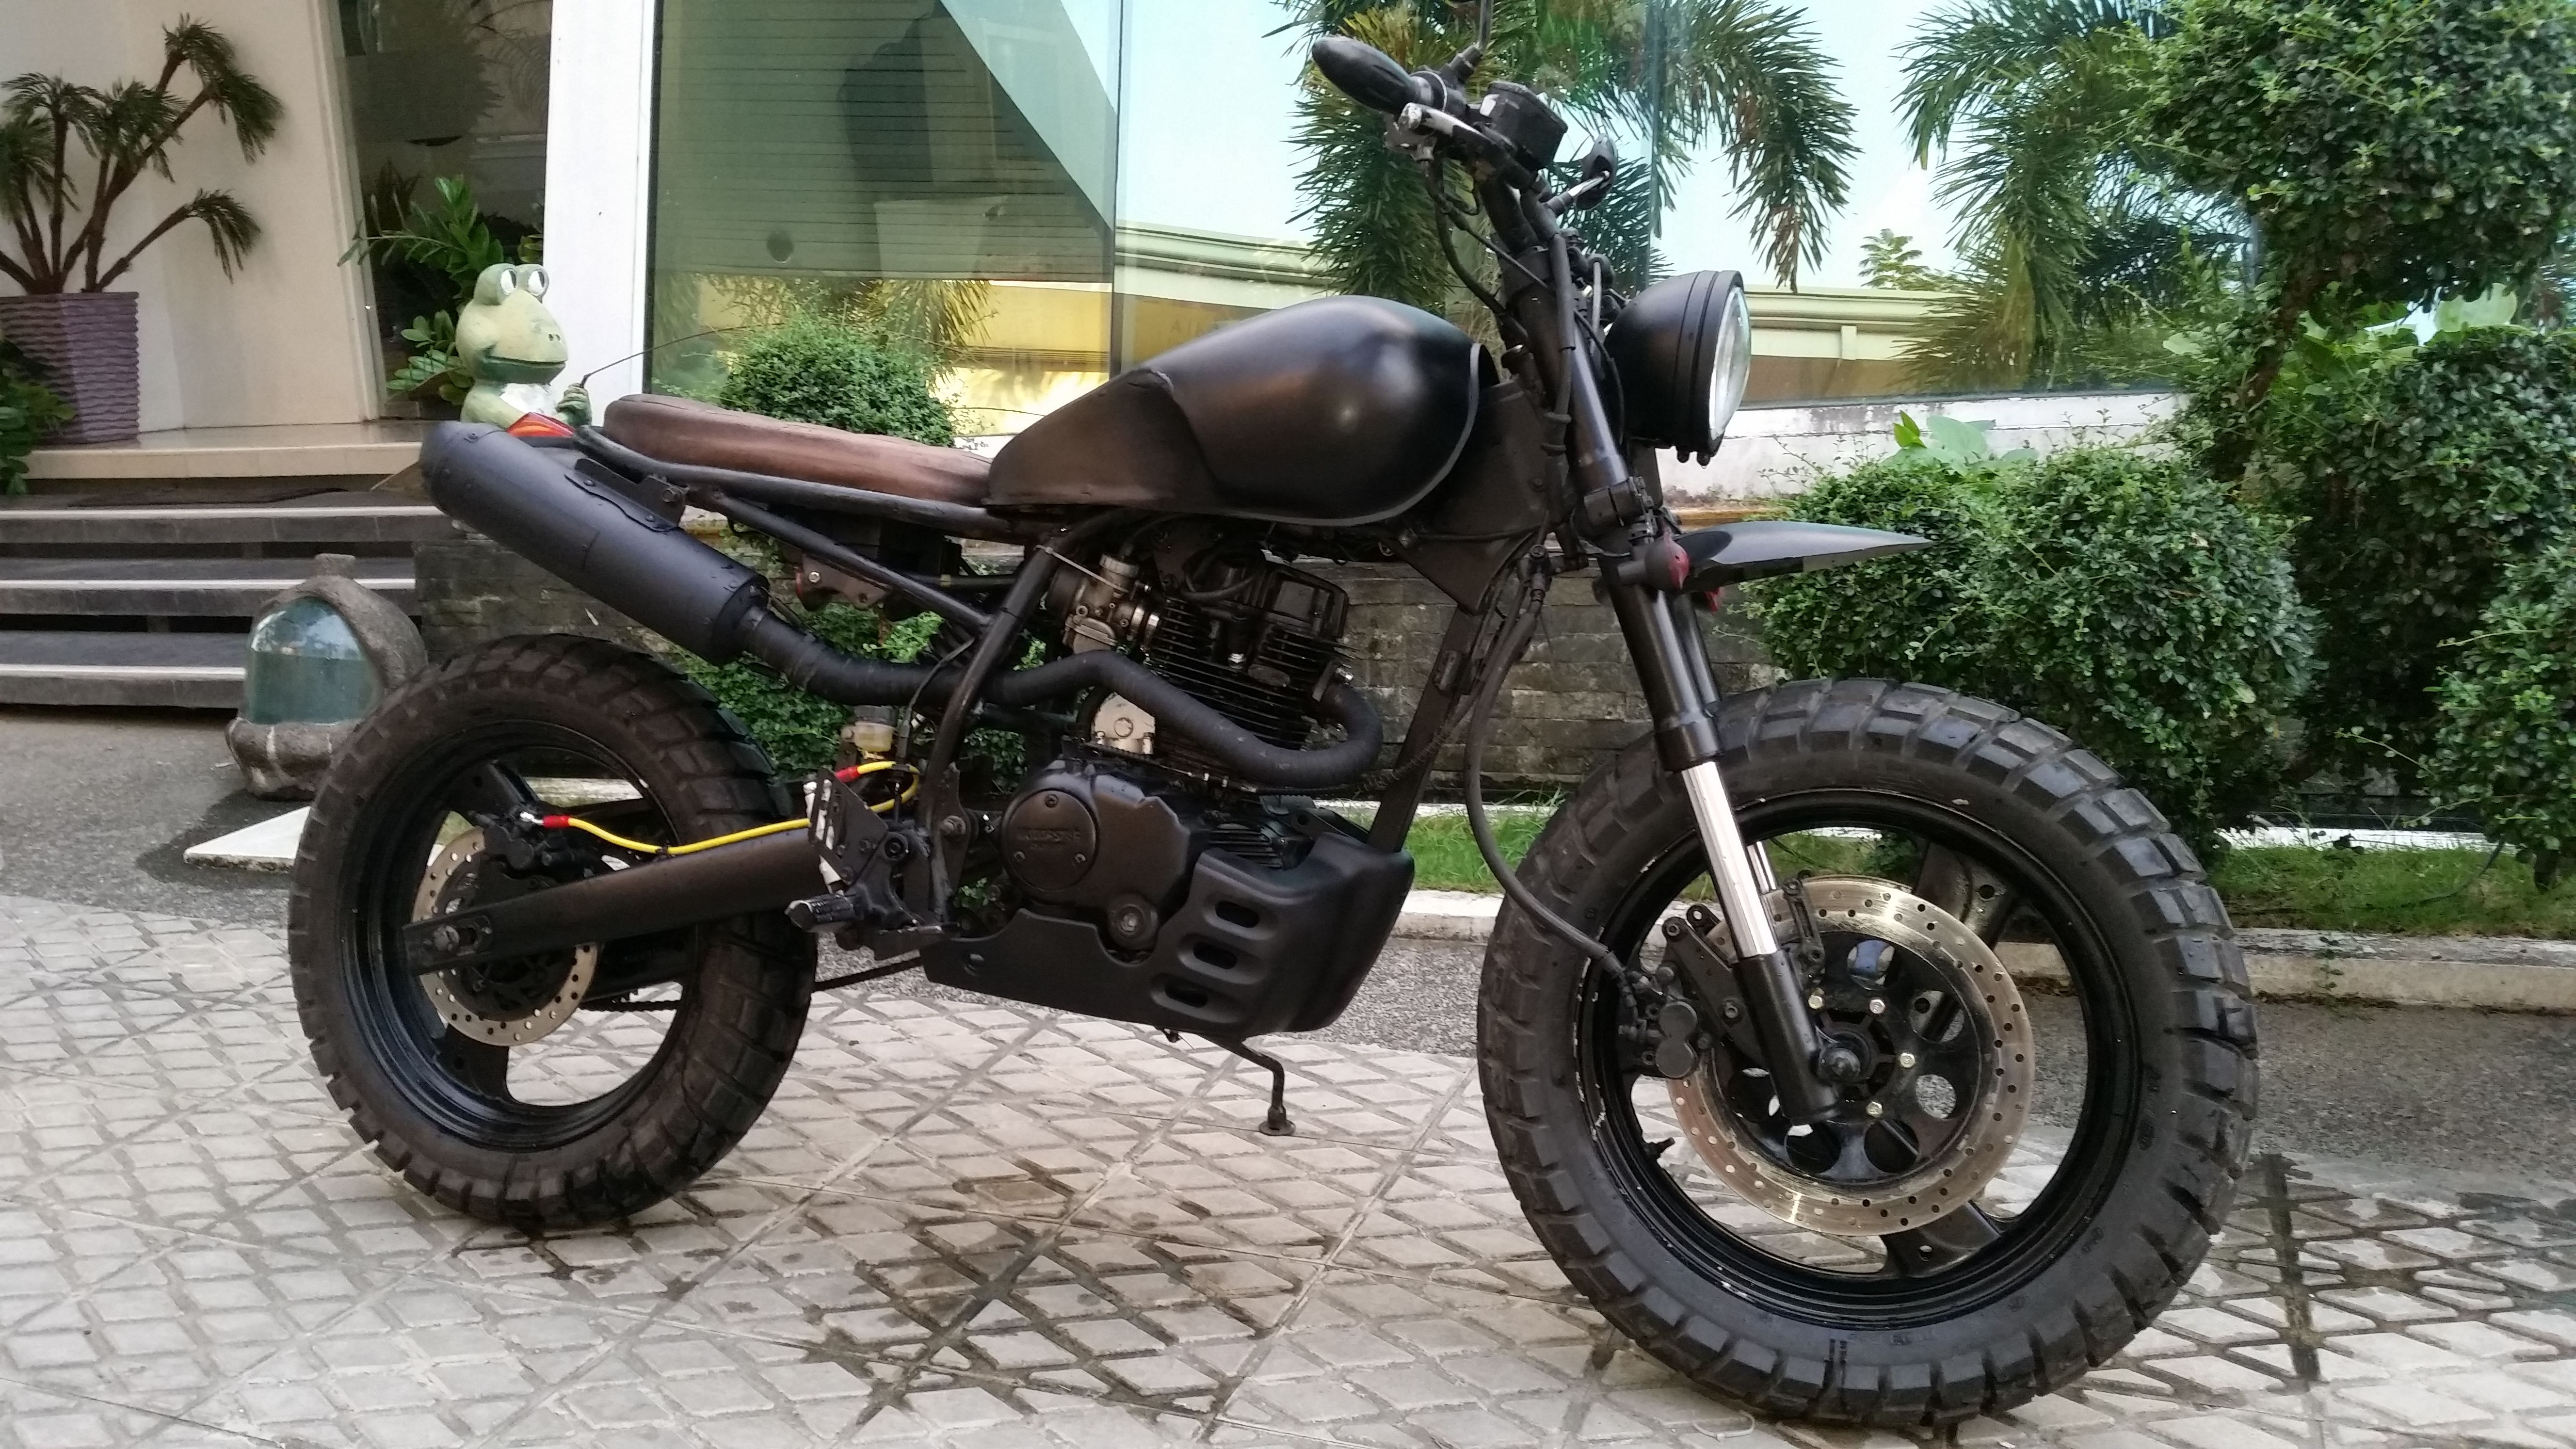 Cafe Racer Philippines Best Custom Motorcycles of 2015